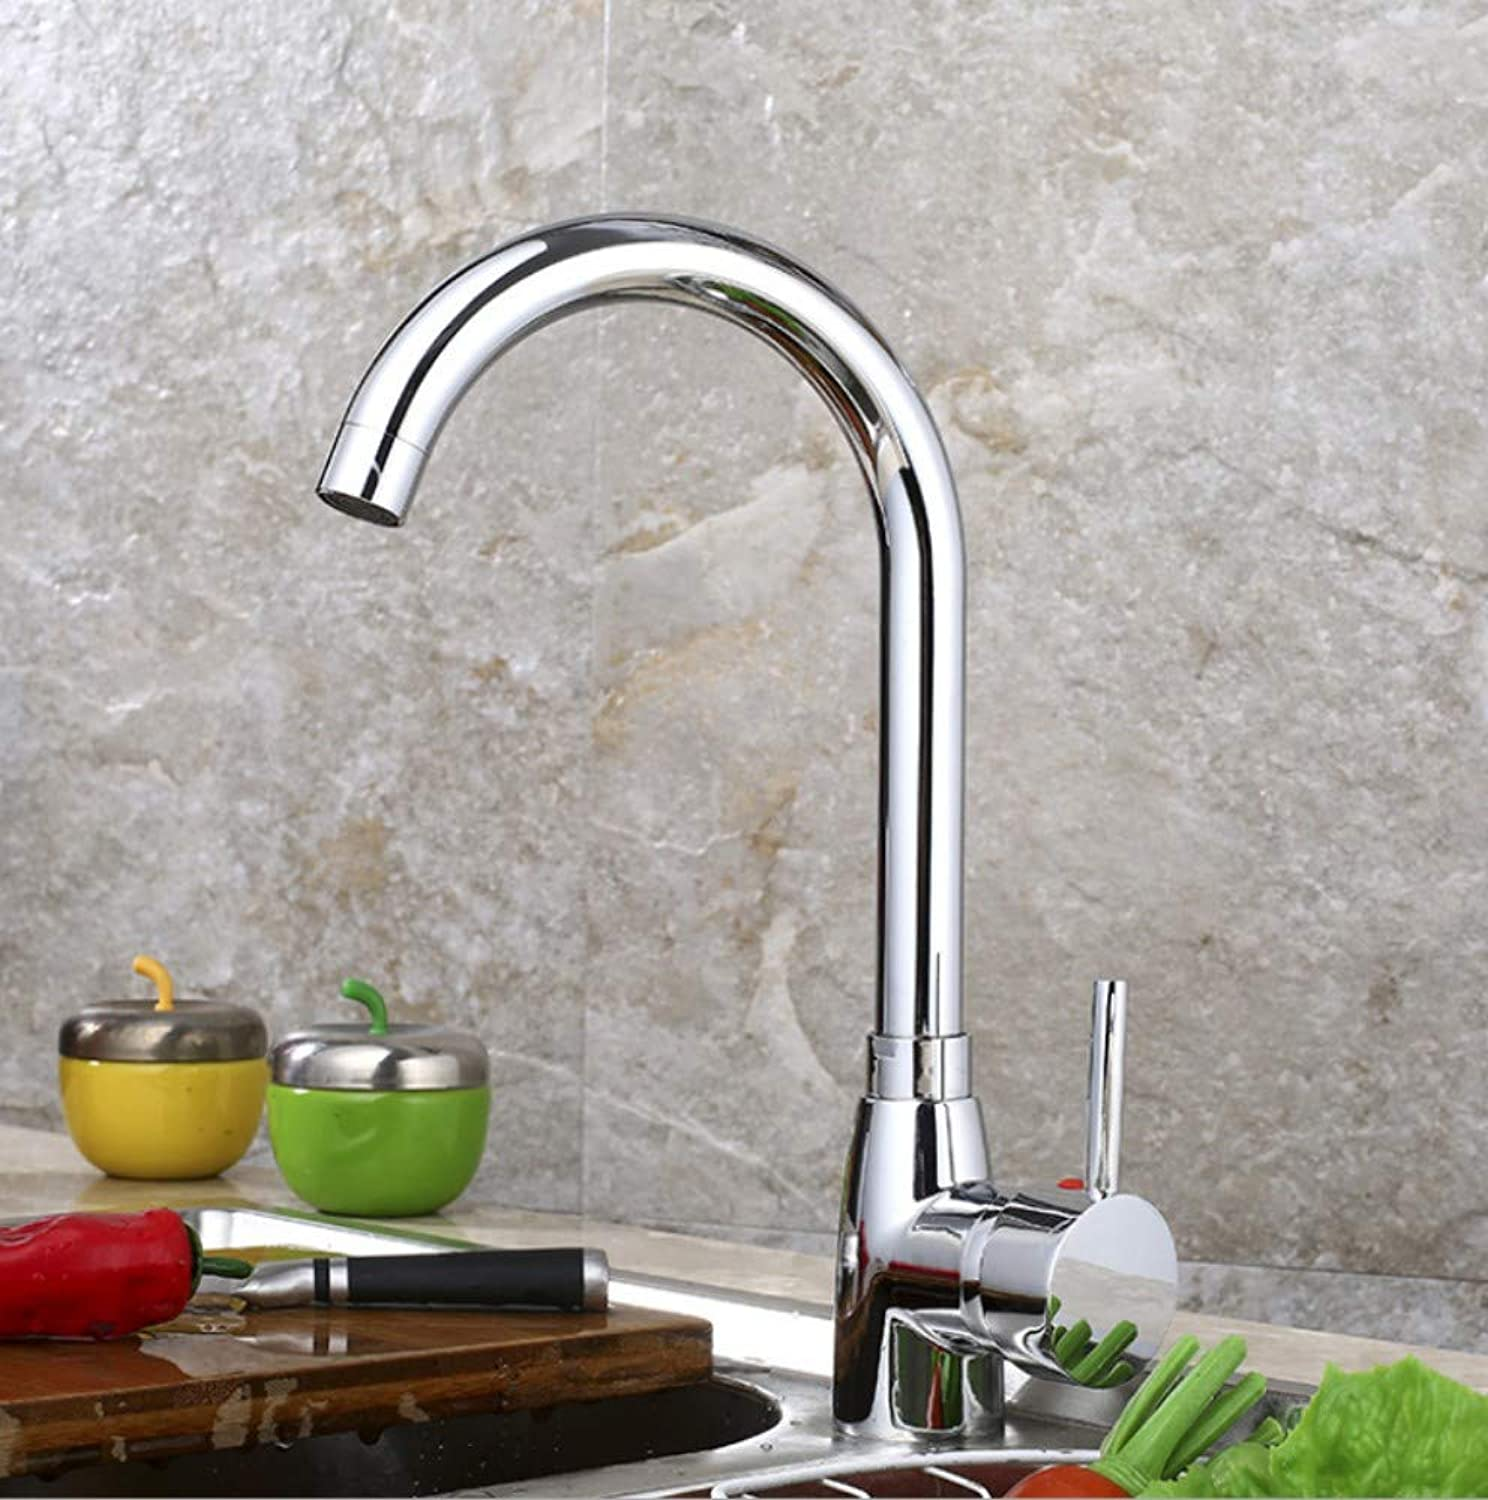 Bathroom Sink Basin Lever Mixer Tap Kitchen Faucet Cold and Hot Water Tank Dishpan Universal Faucet Copper redary Faucet